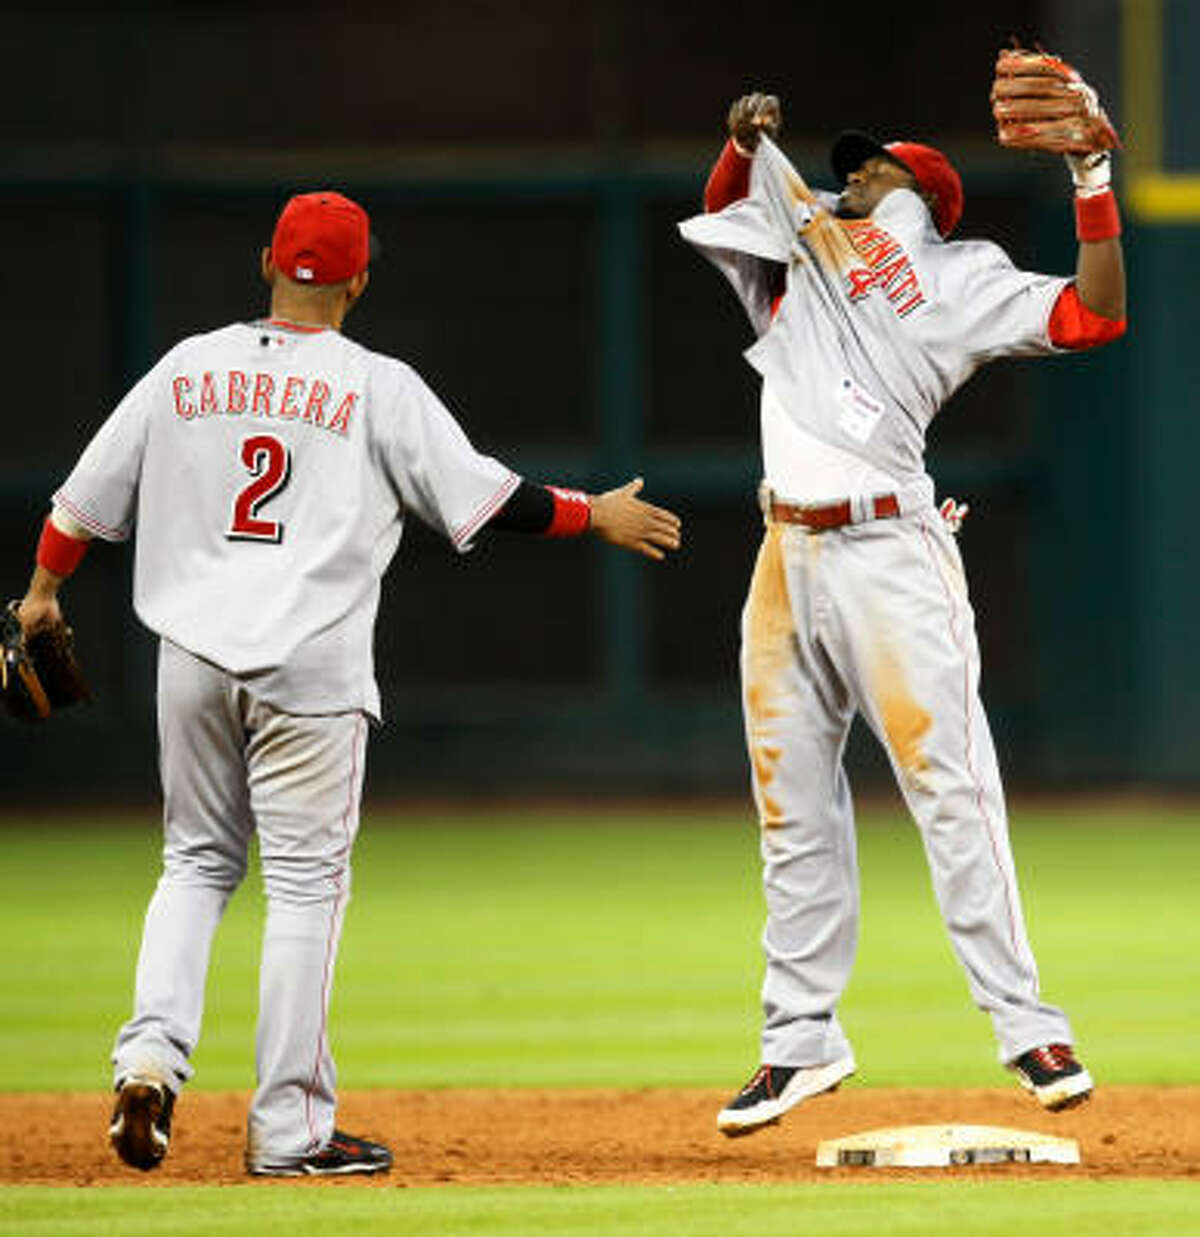 Reds second baseman Brandon Phillips, right, throws off his jersey after he turned a game-ending double play on a hit ball by Astros third baseman Geoff Blum as the Reds sweep the Astros during a 4-2 victory.